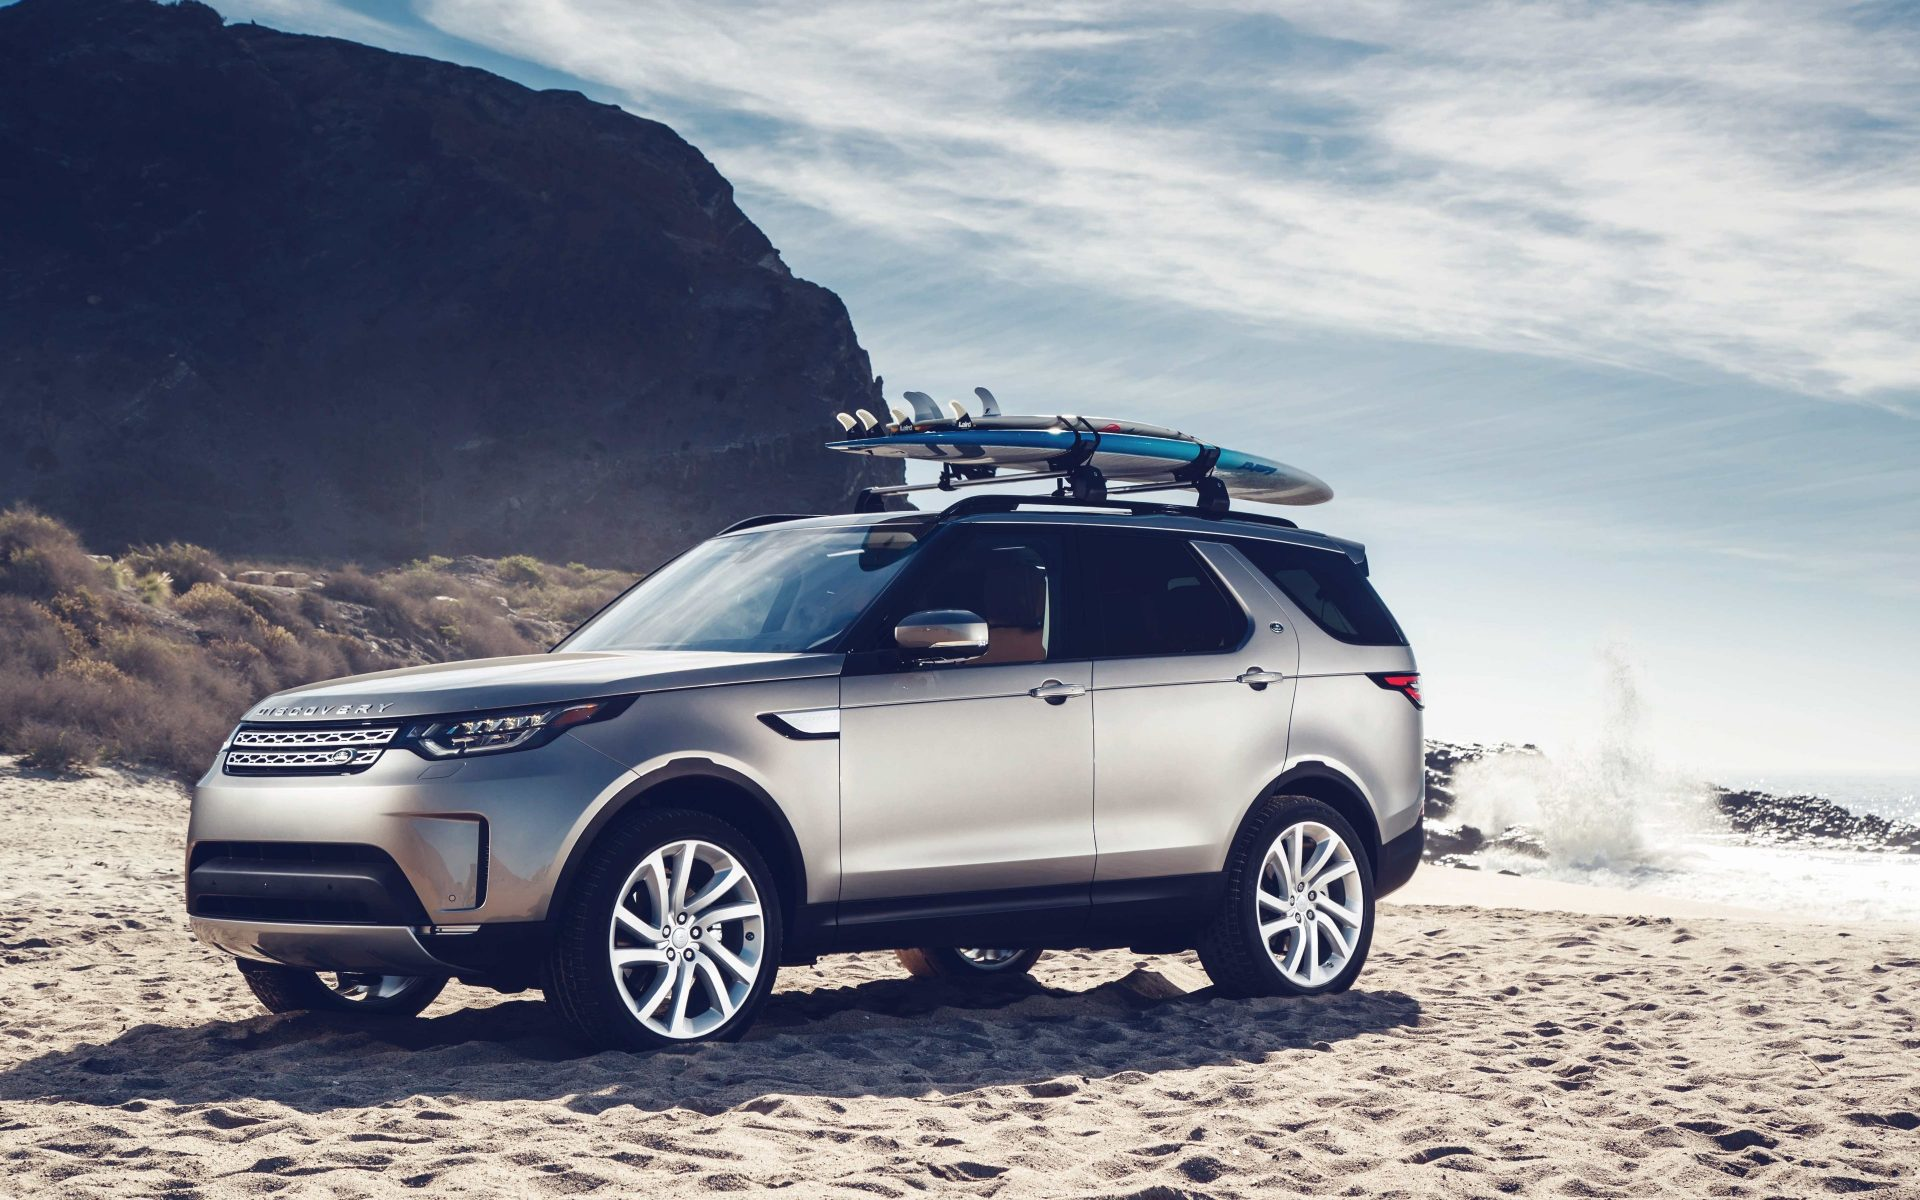 land-rover-discovery-project-hero-background-Is-4K-Wallpaper.jpg